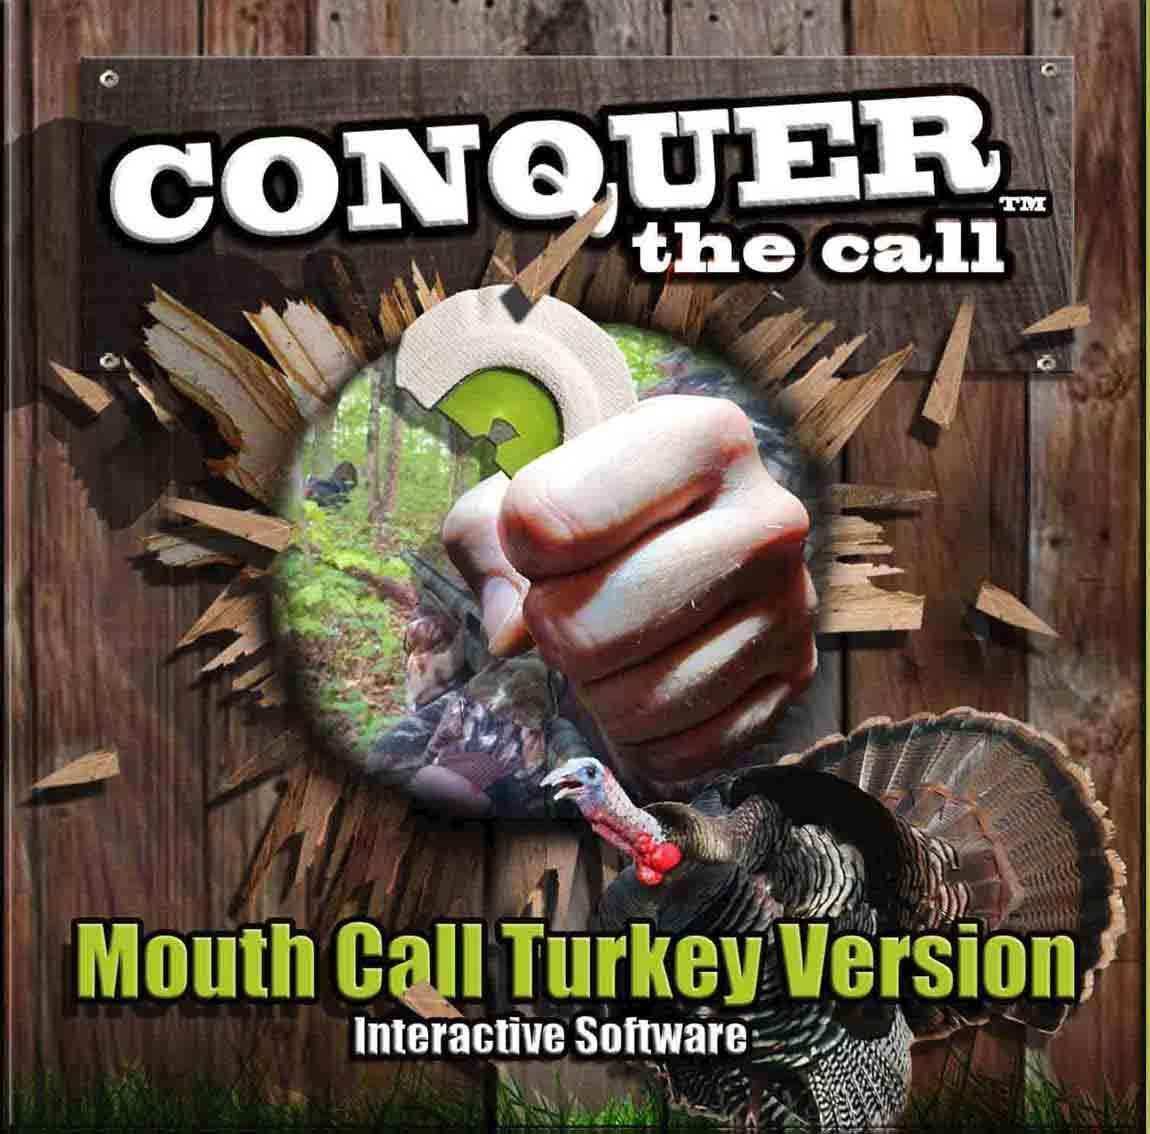 Conquer the Call Training Software, Mouth Call Turkey Edition_2.jpg